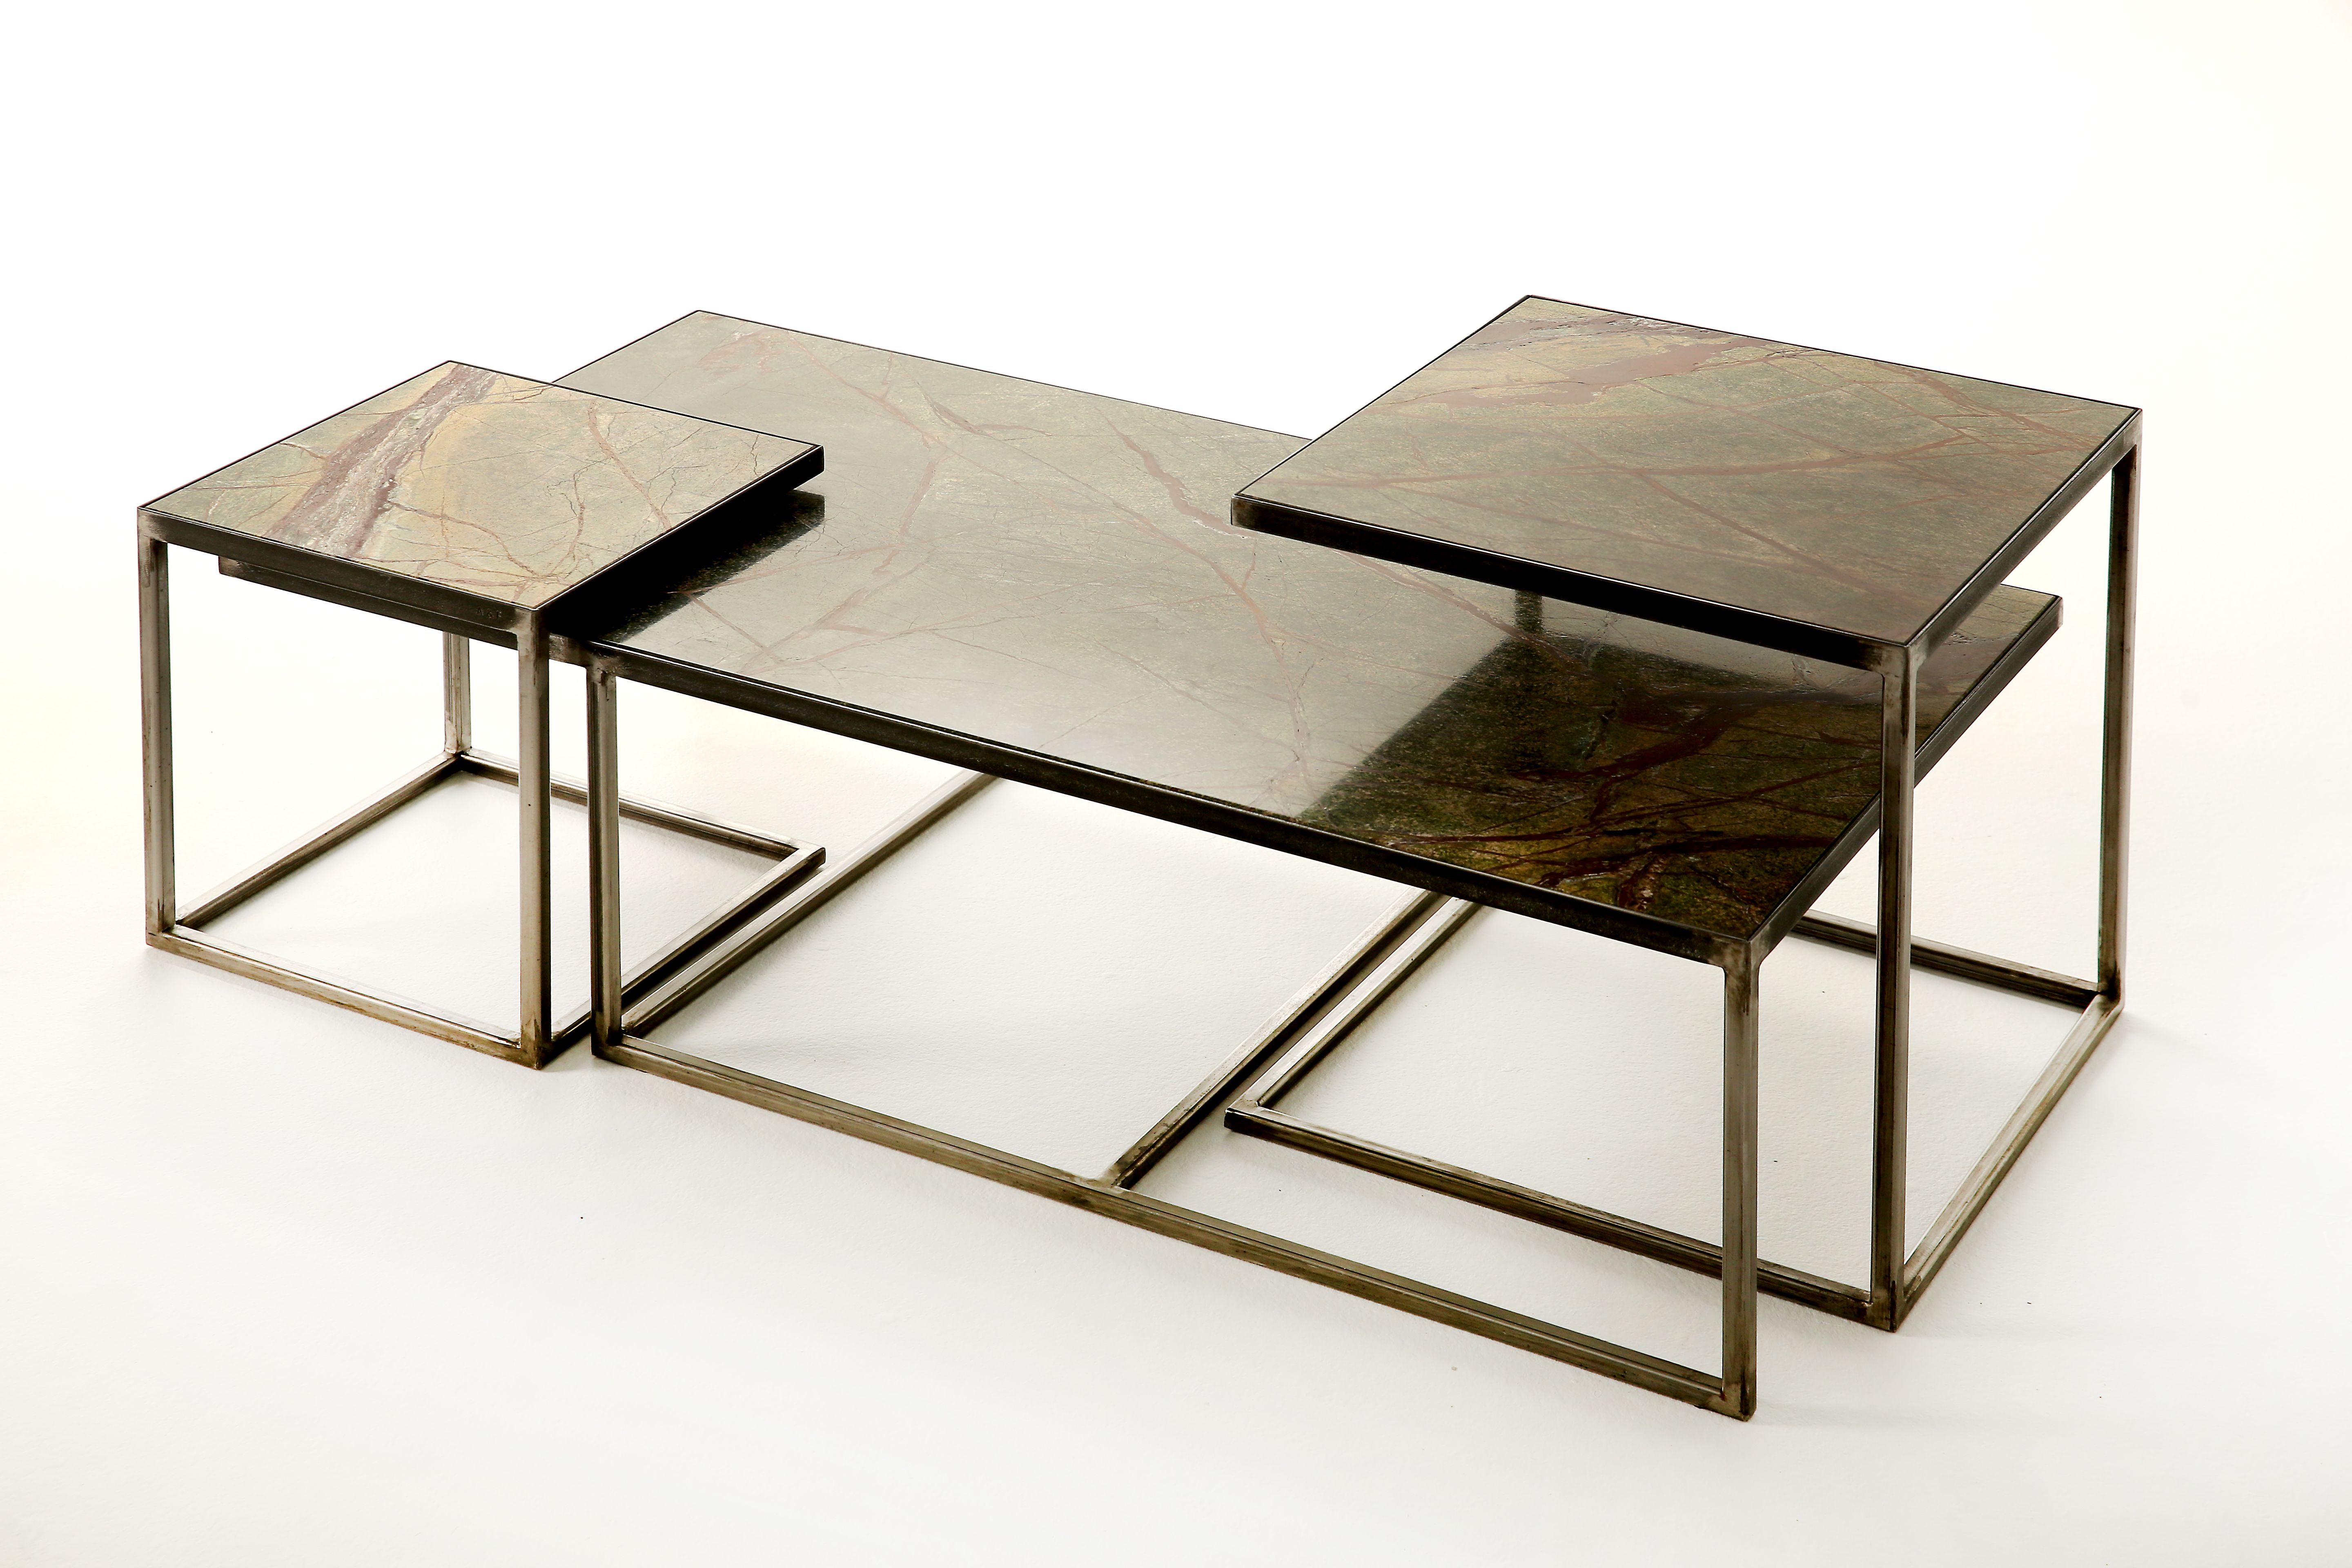 Table by Armand&Francine Steel and marble